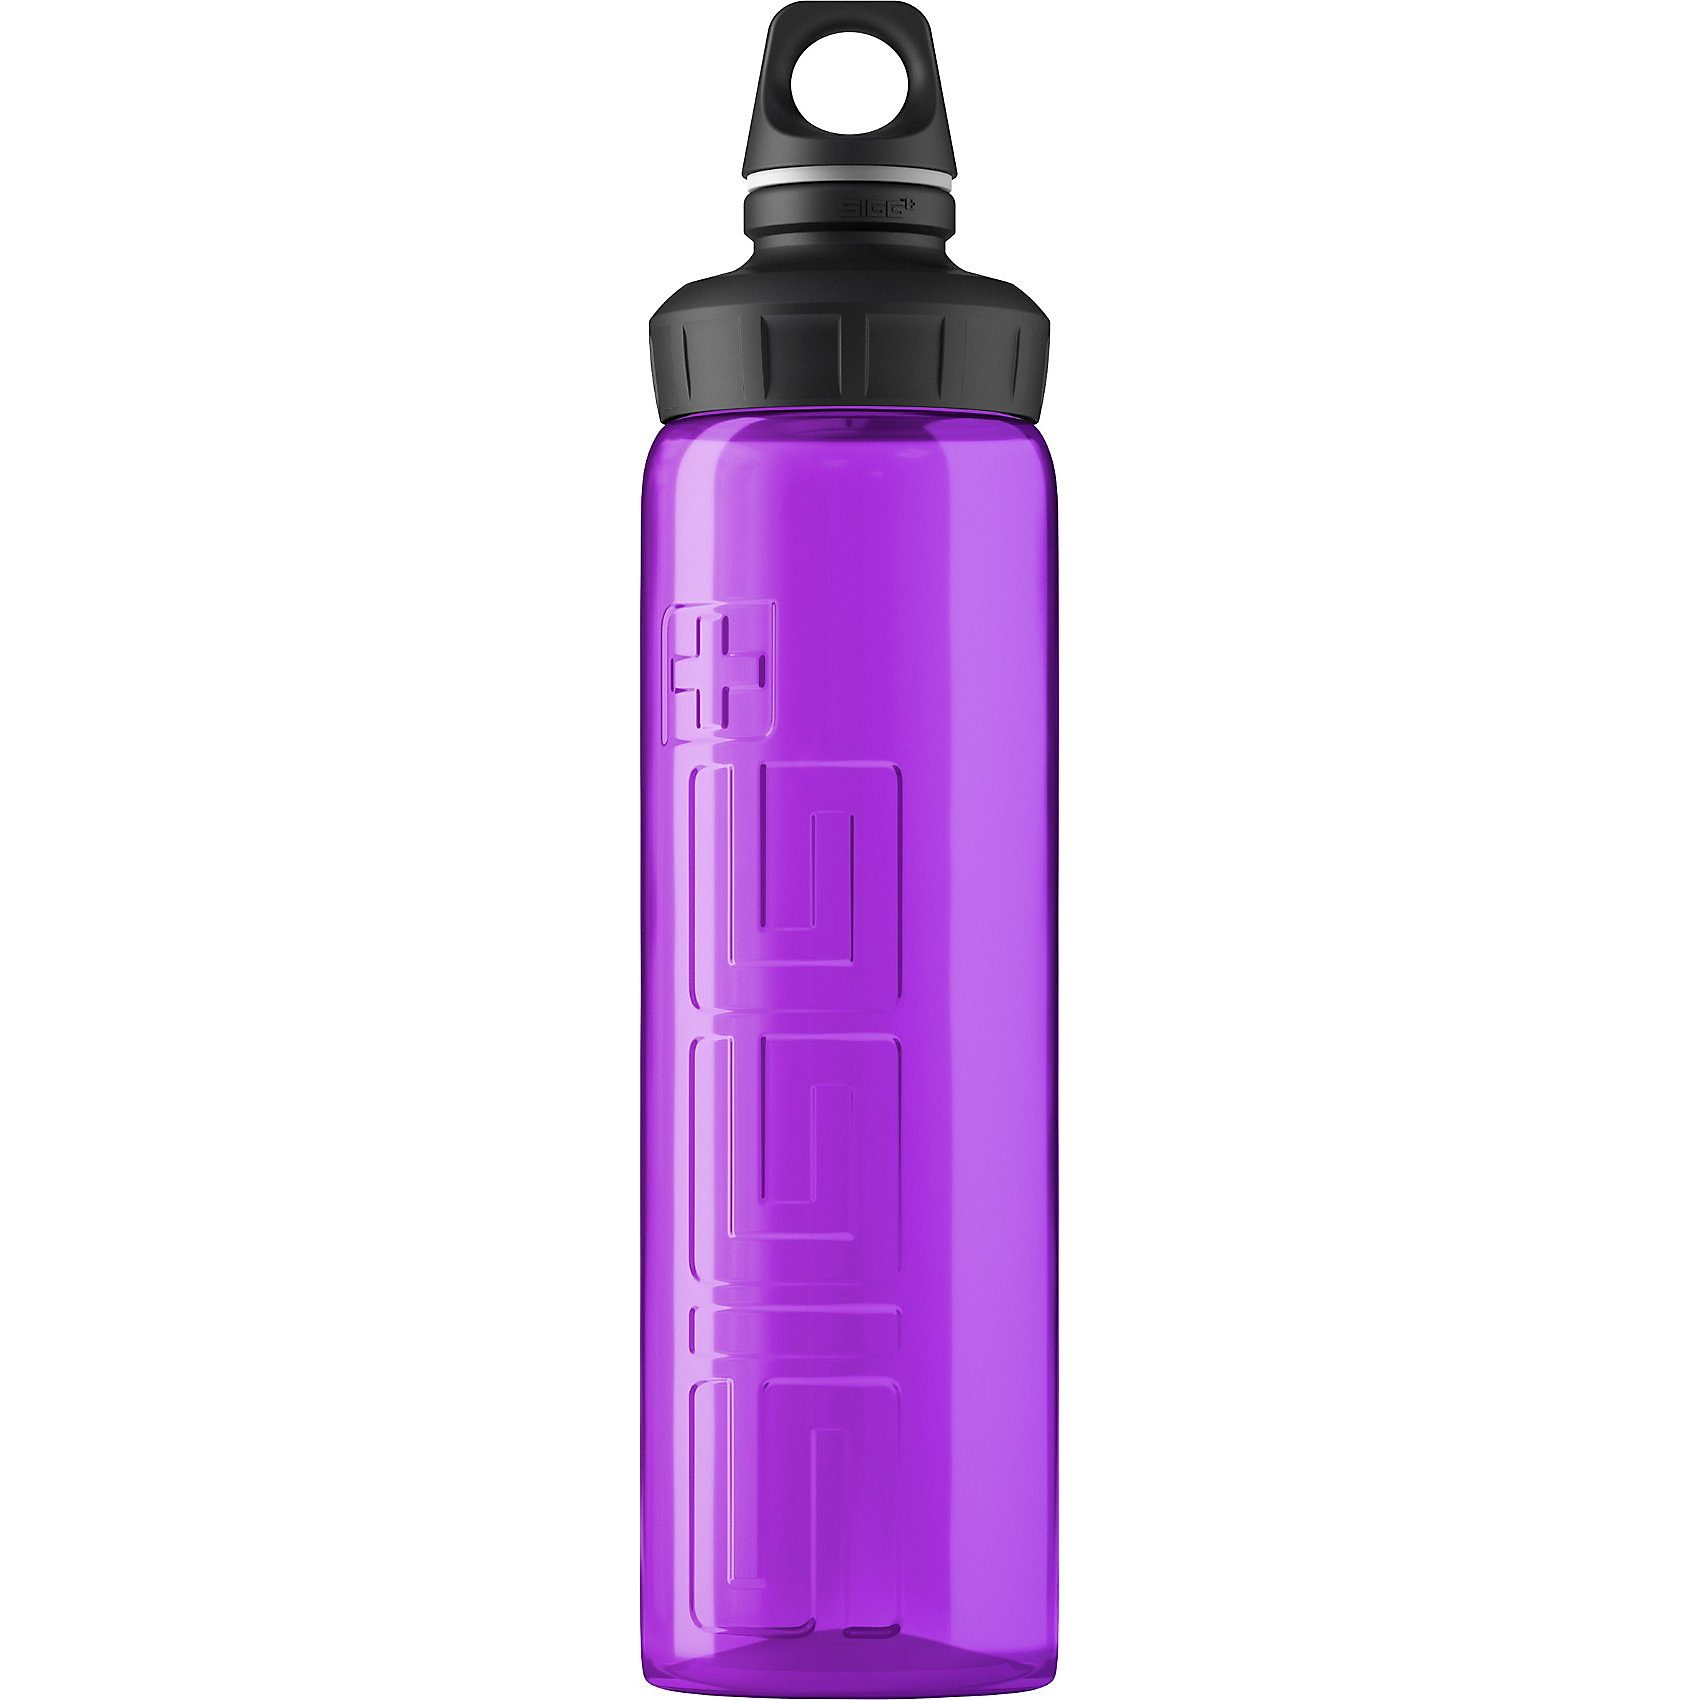 SIGG Trinkflasche VIVA Purple transparent, 750 ml